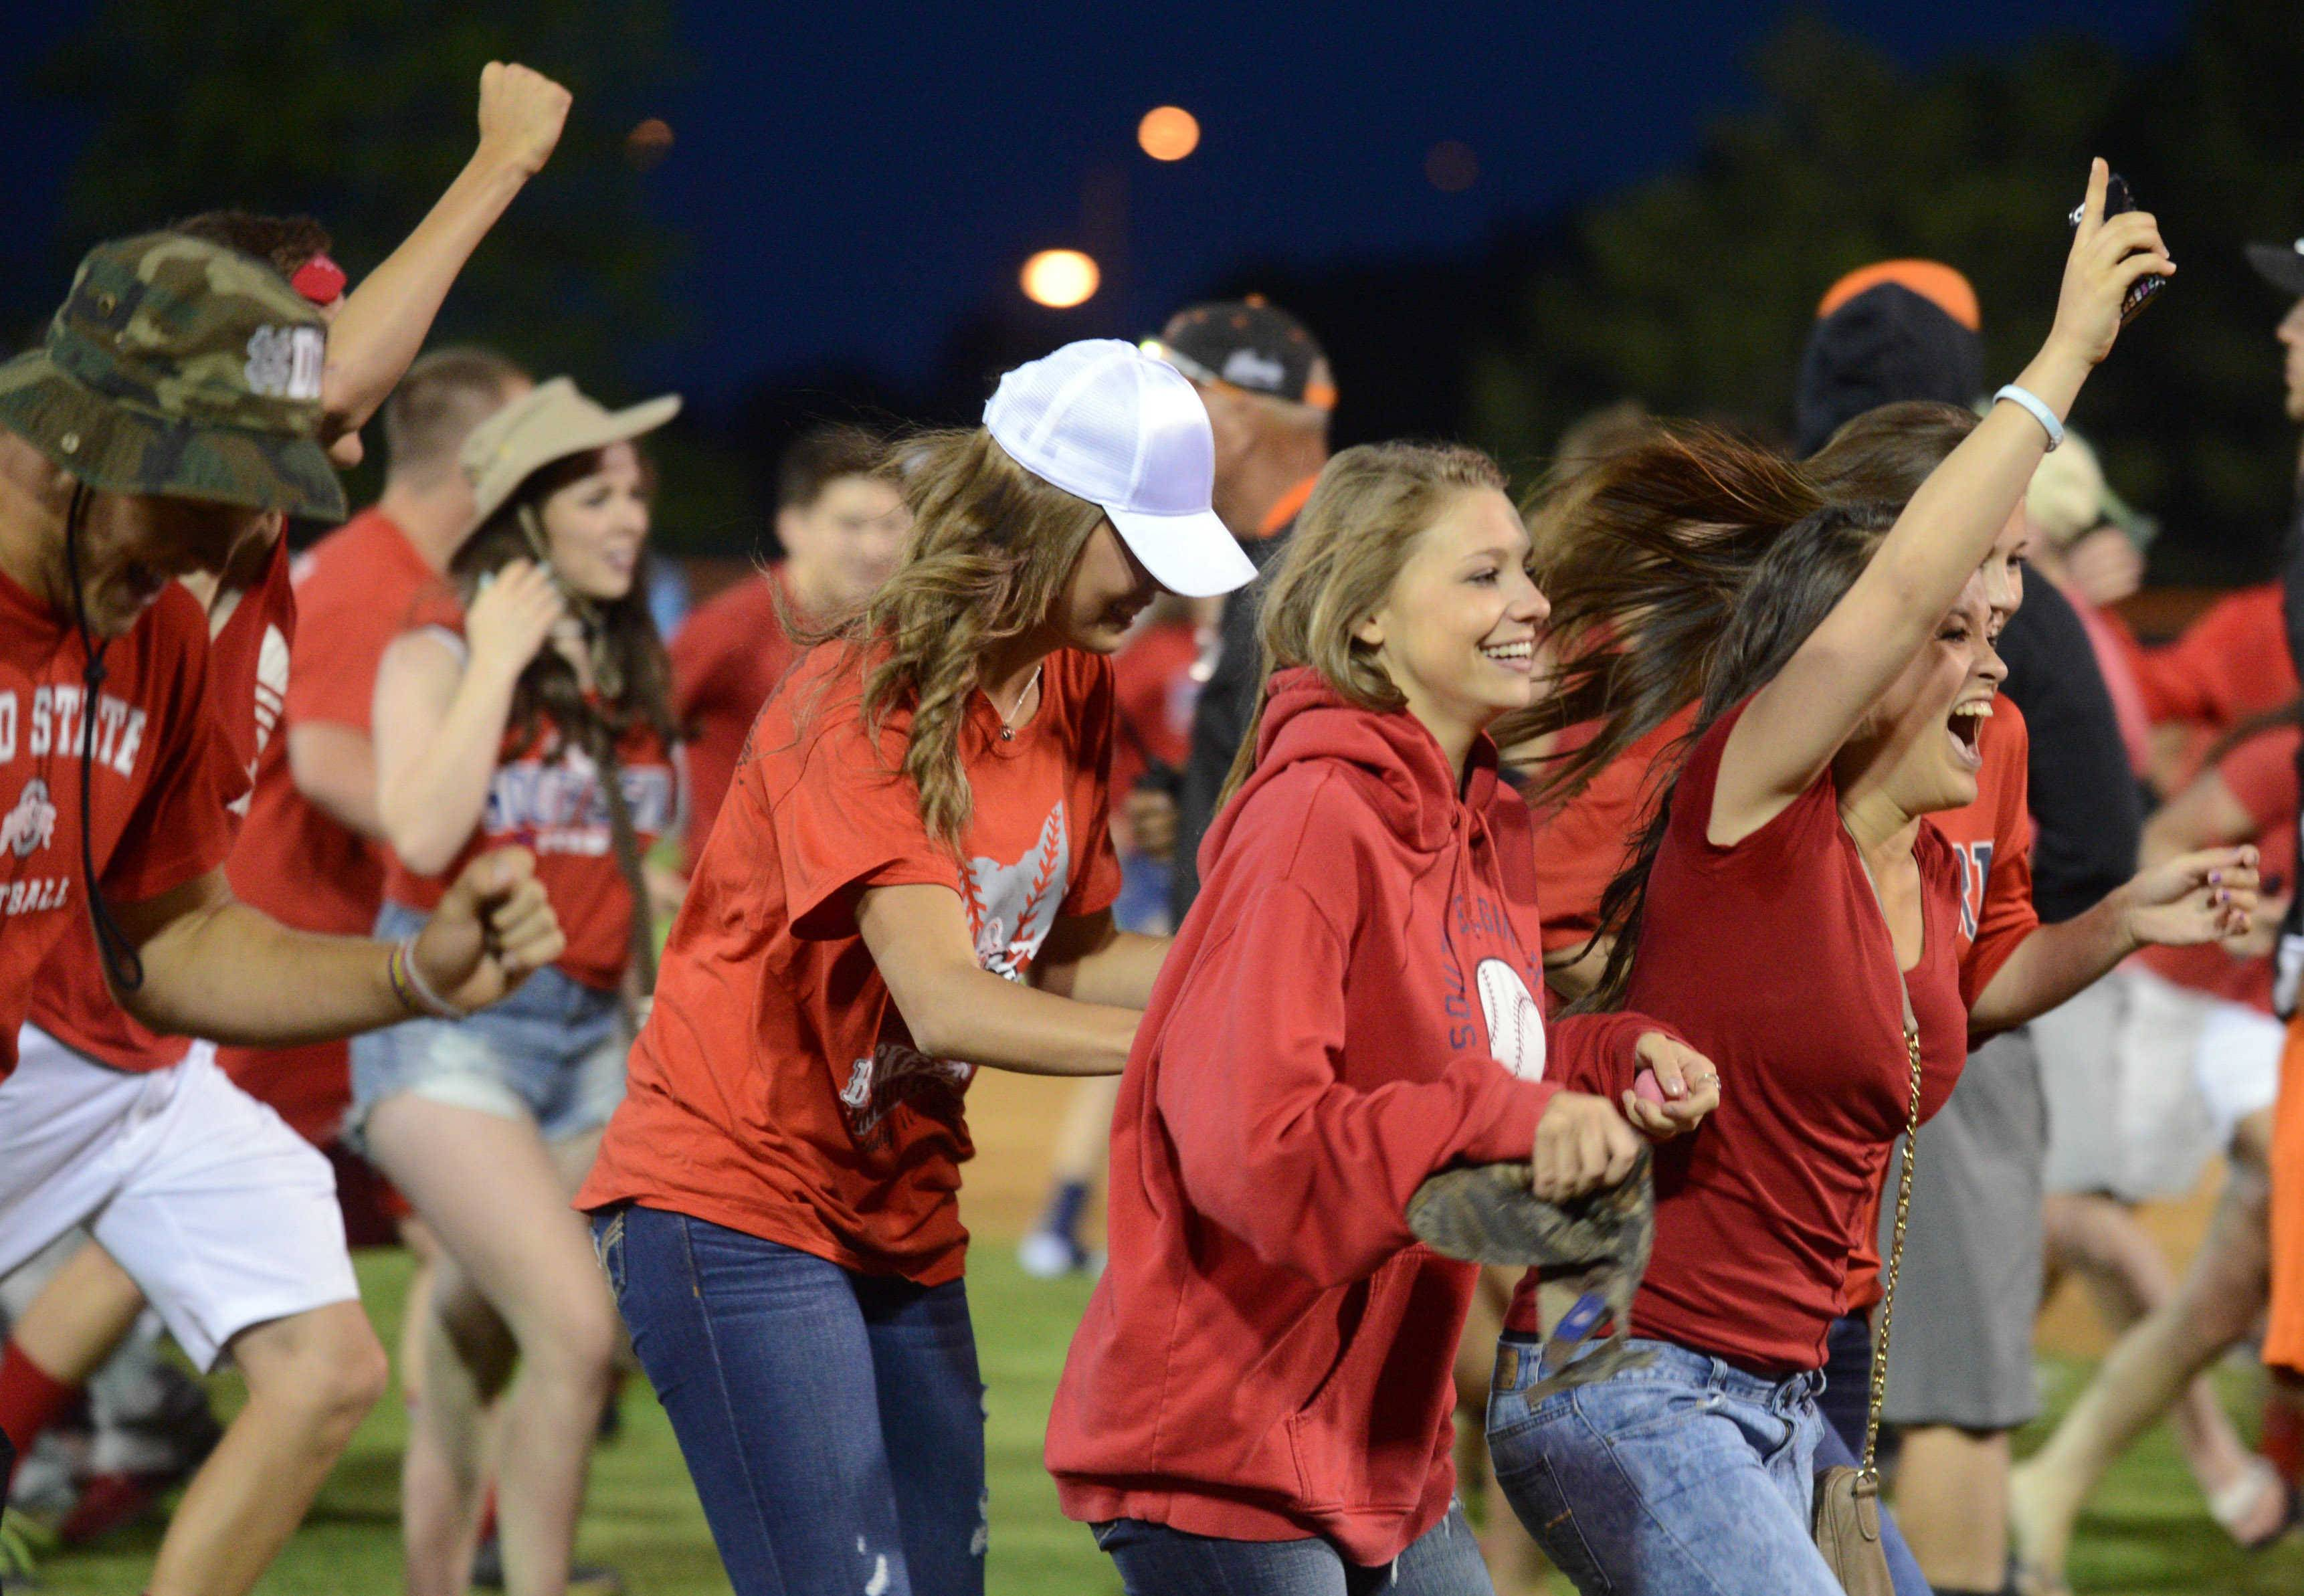 South Elgin's fans celebrate by rushing on the field after a 7-6 win over Evanston during the Class 4A supersectional baseball game at Boomers Stadium in Schaumburg on Monday night.